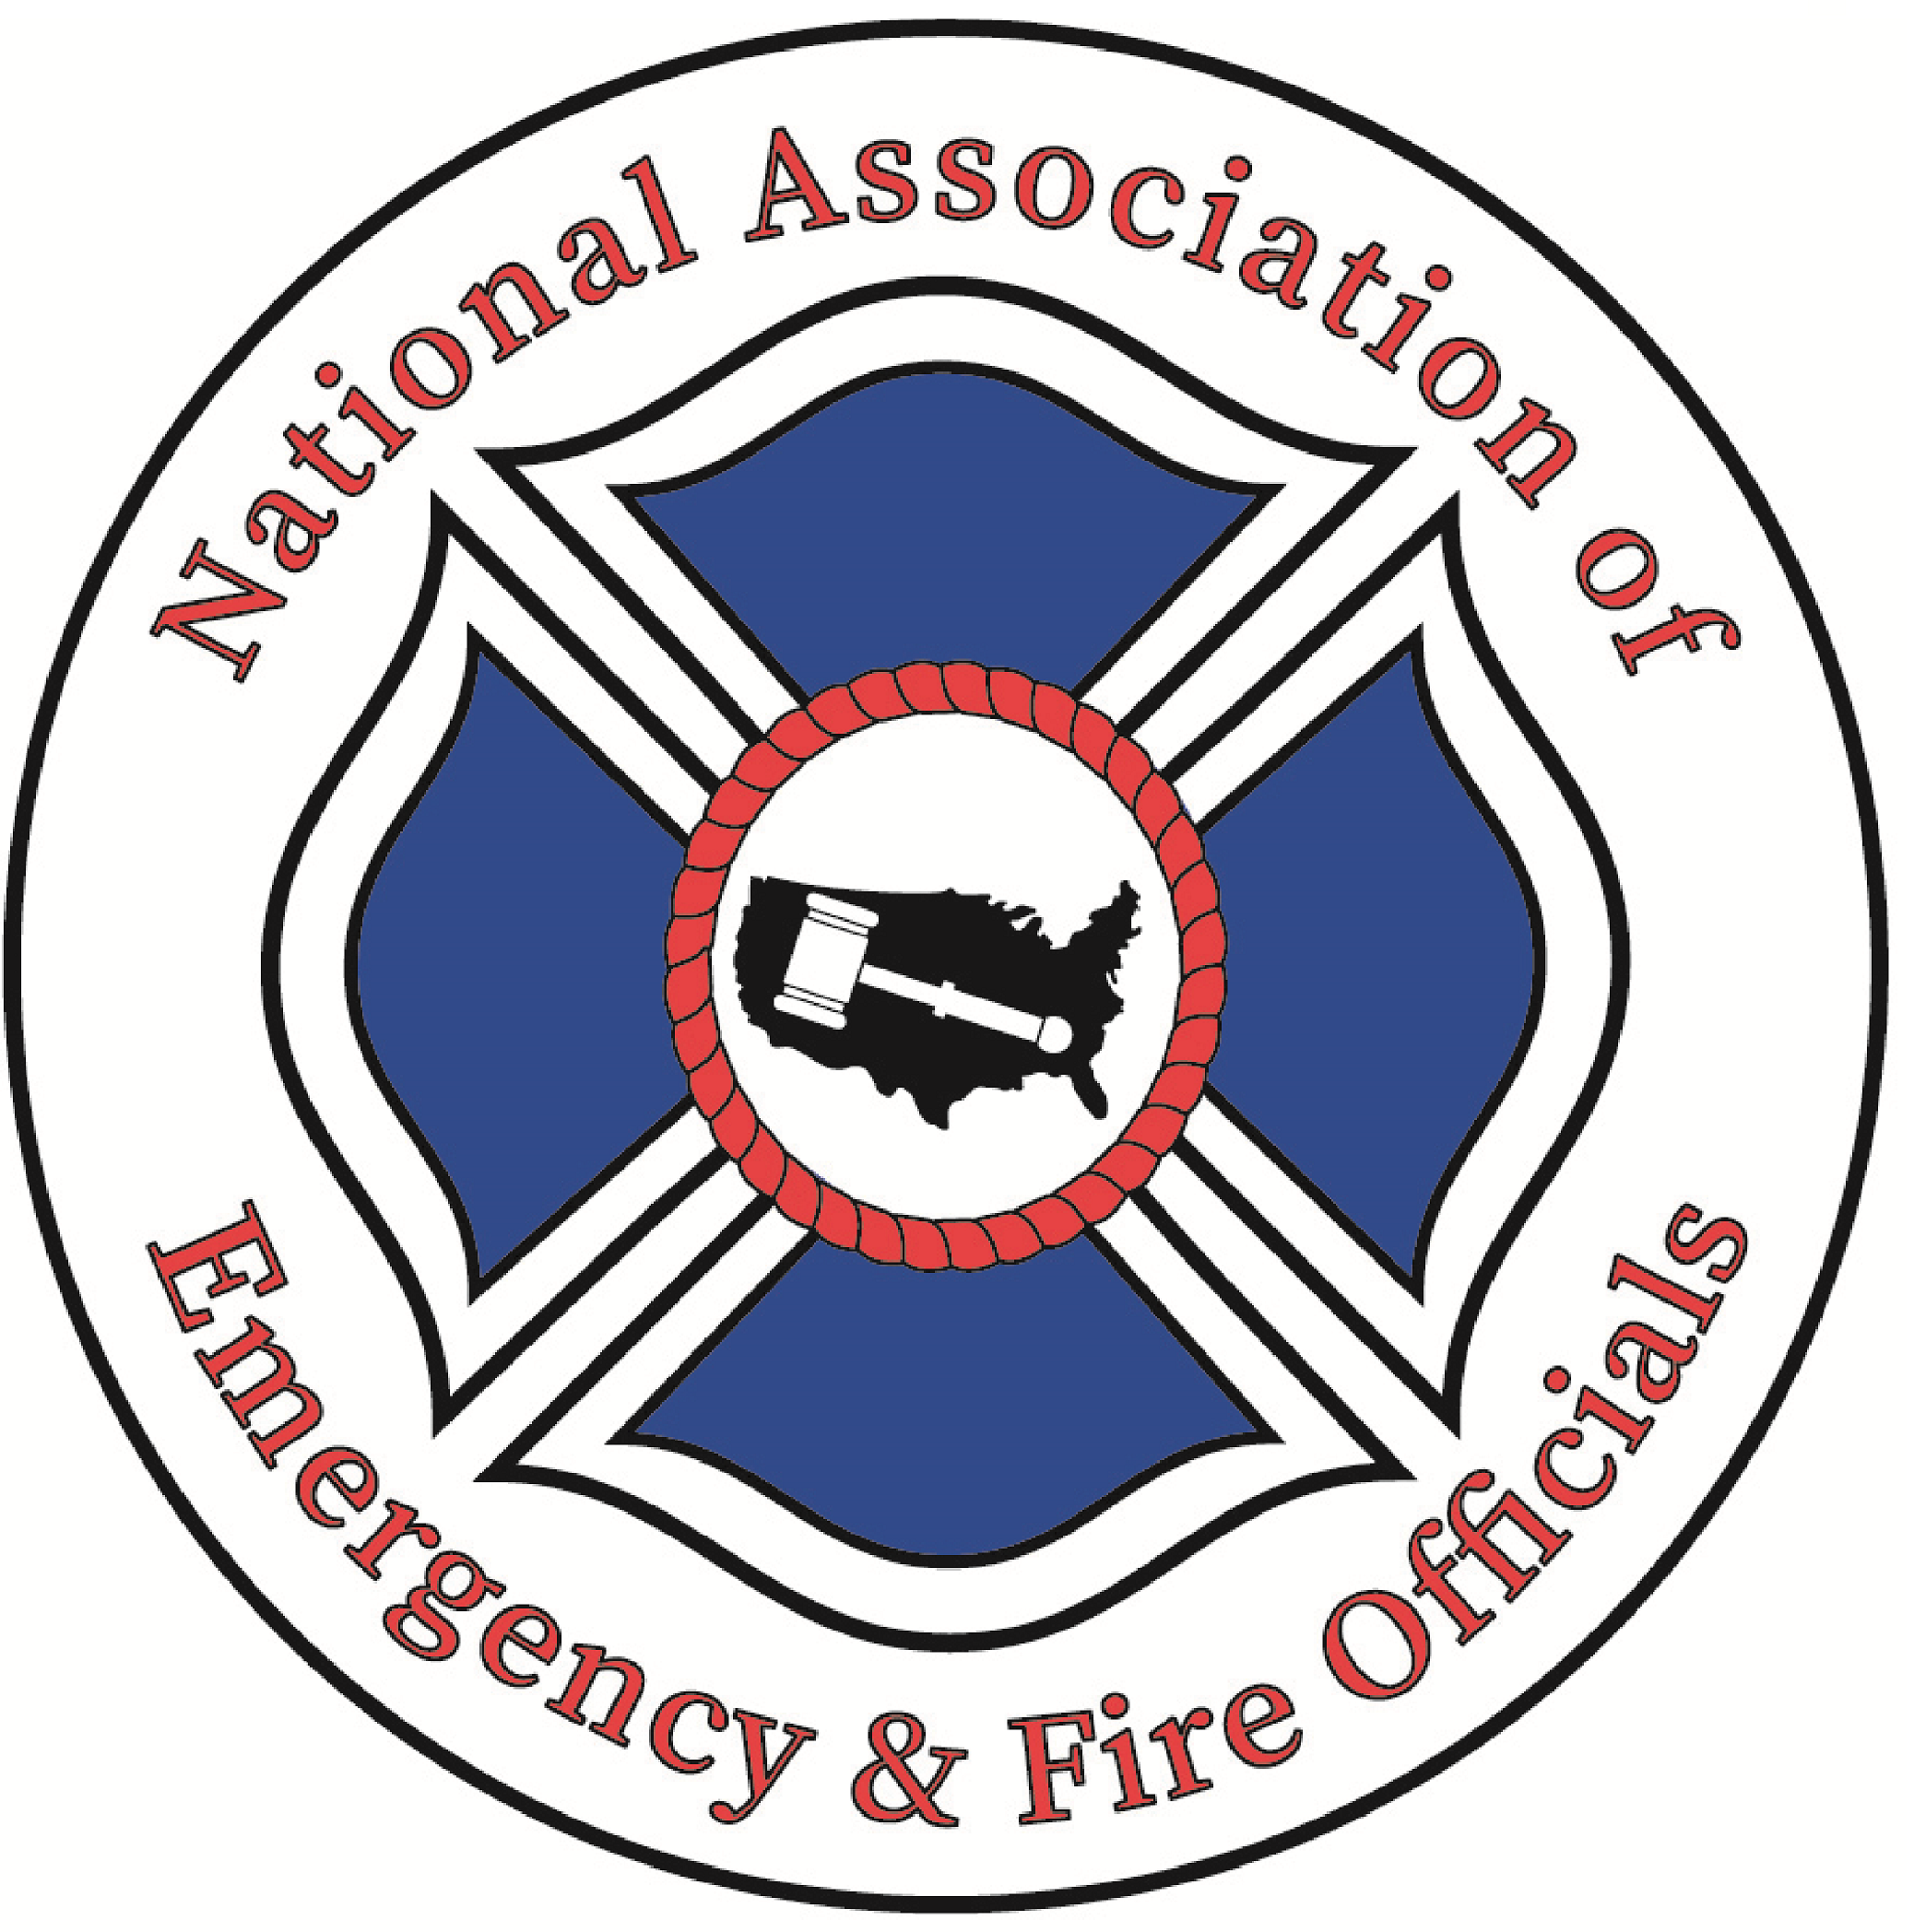 National Association of Emergency and Fire Officials